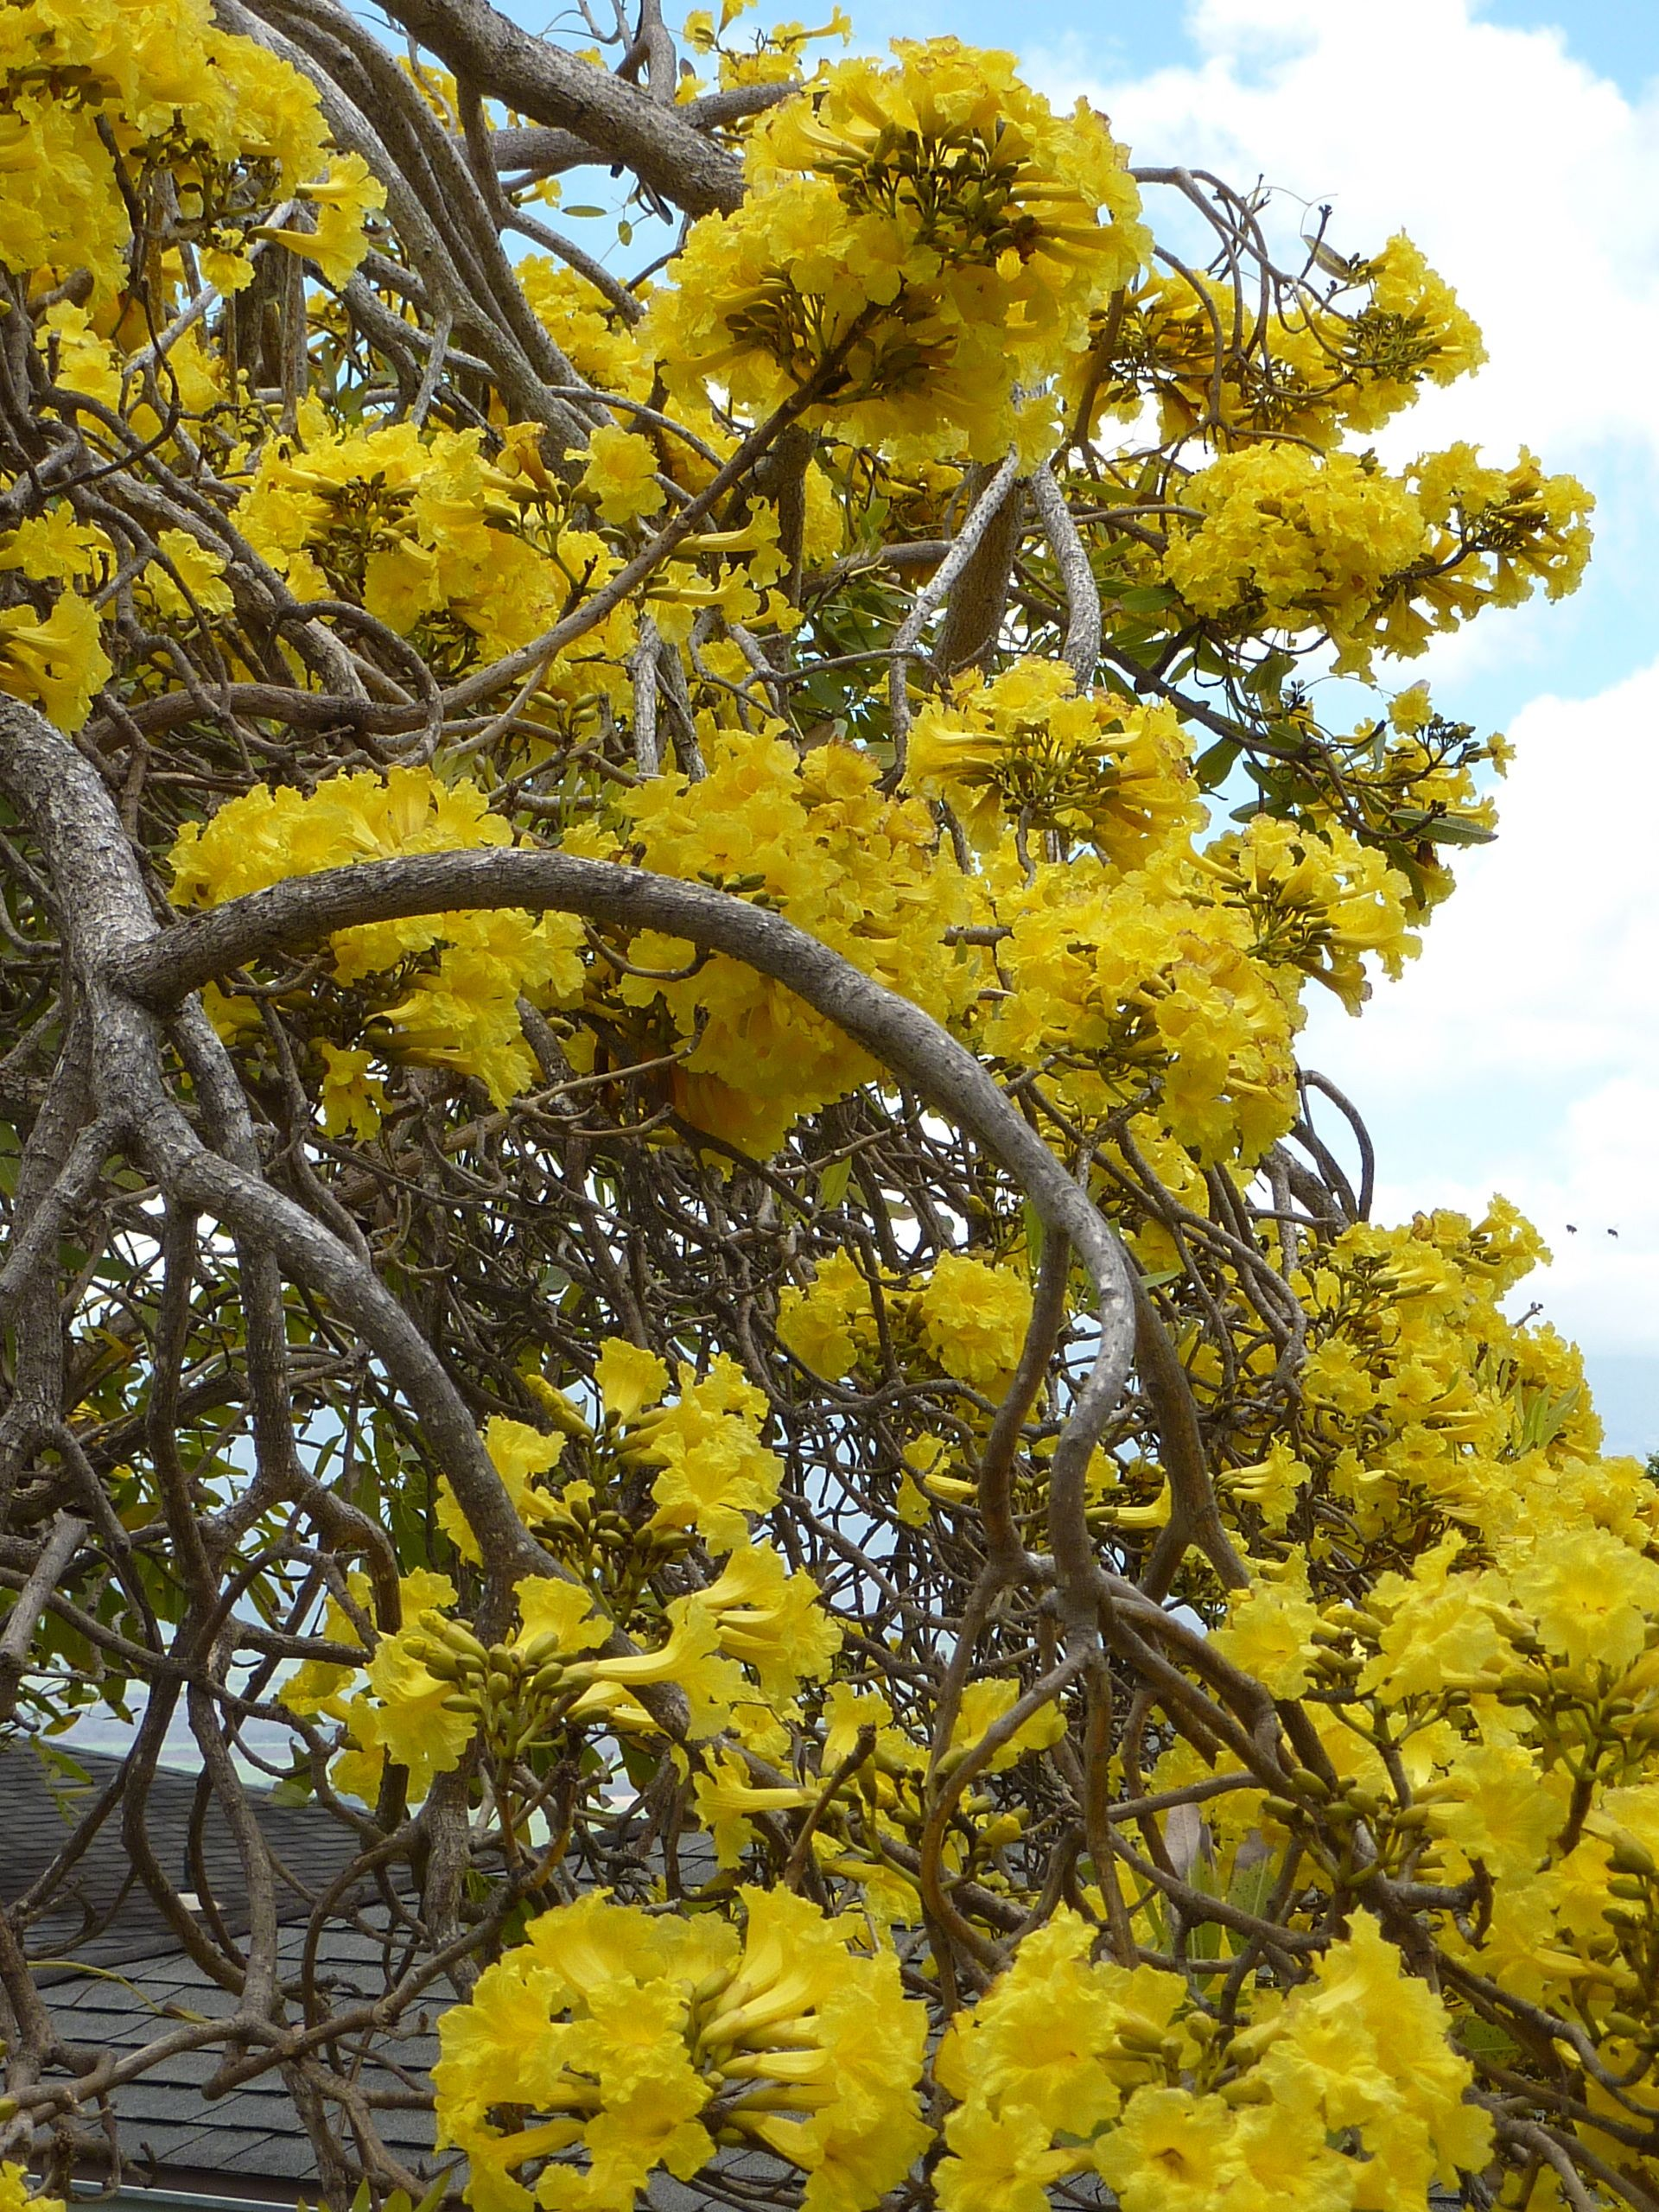 Yellow flowering tree mauiyone know its name exotic yellow flowering tree mauiyone know its name mightylinksfo Gallery